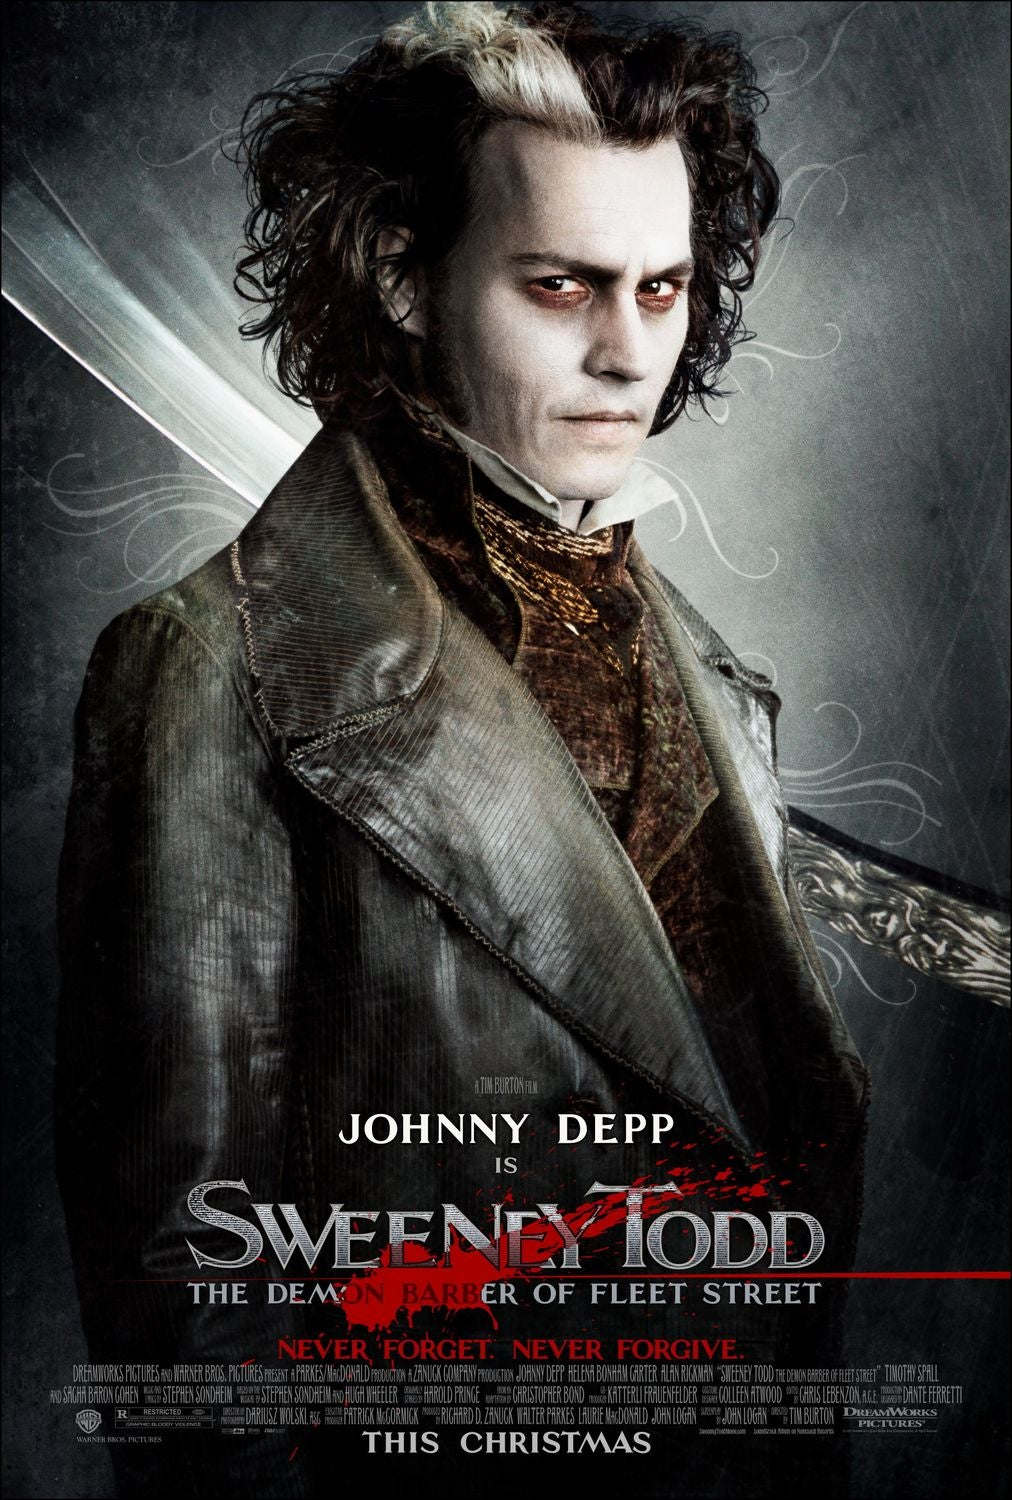 Sweeney Todd, the Demon Barber of Fleet Street movie poster